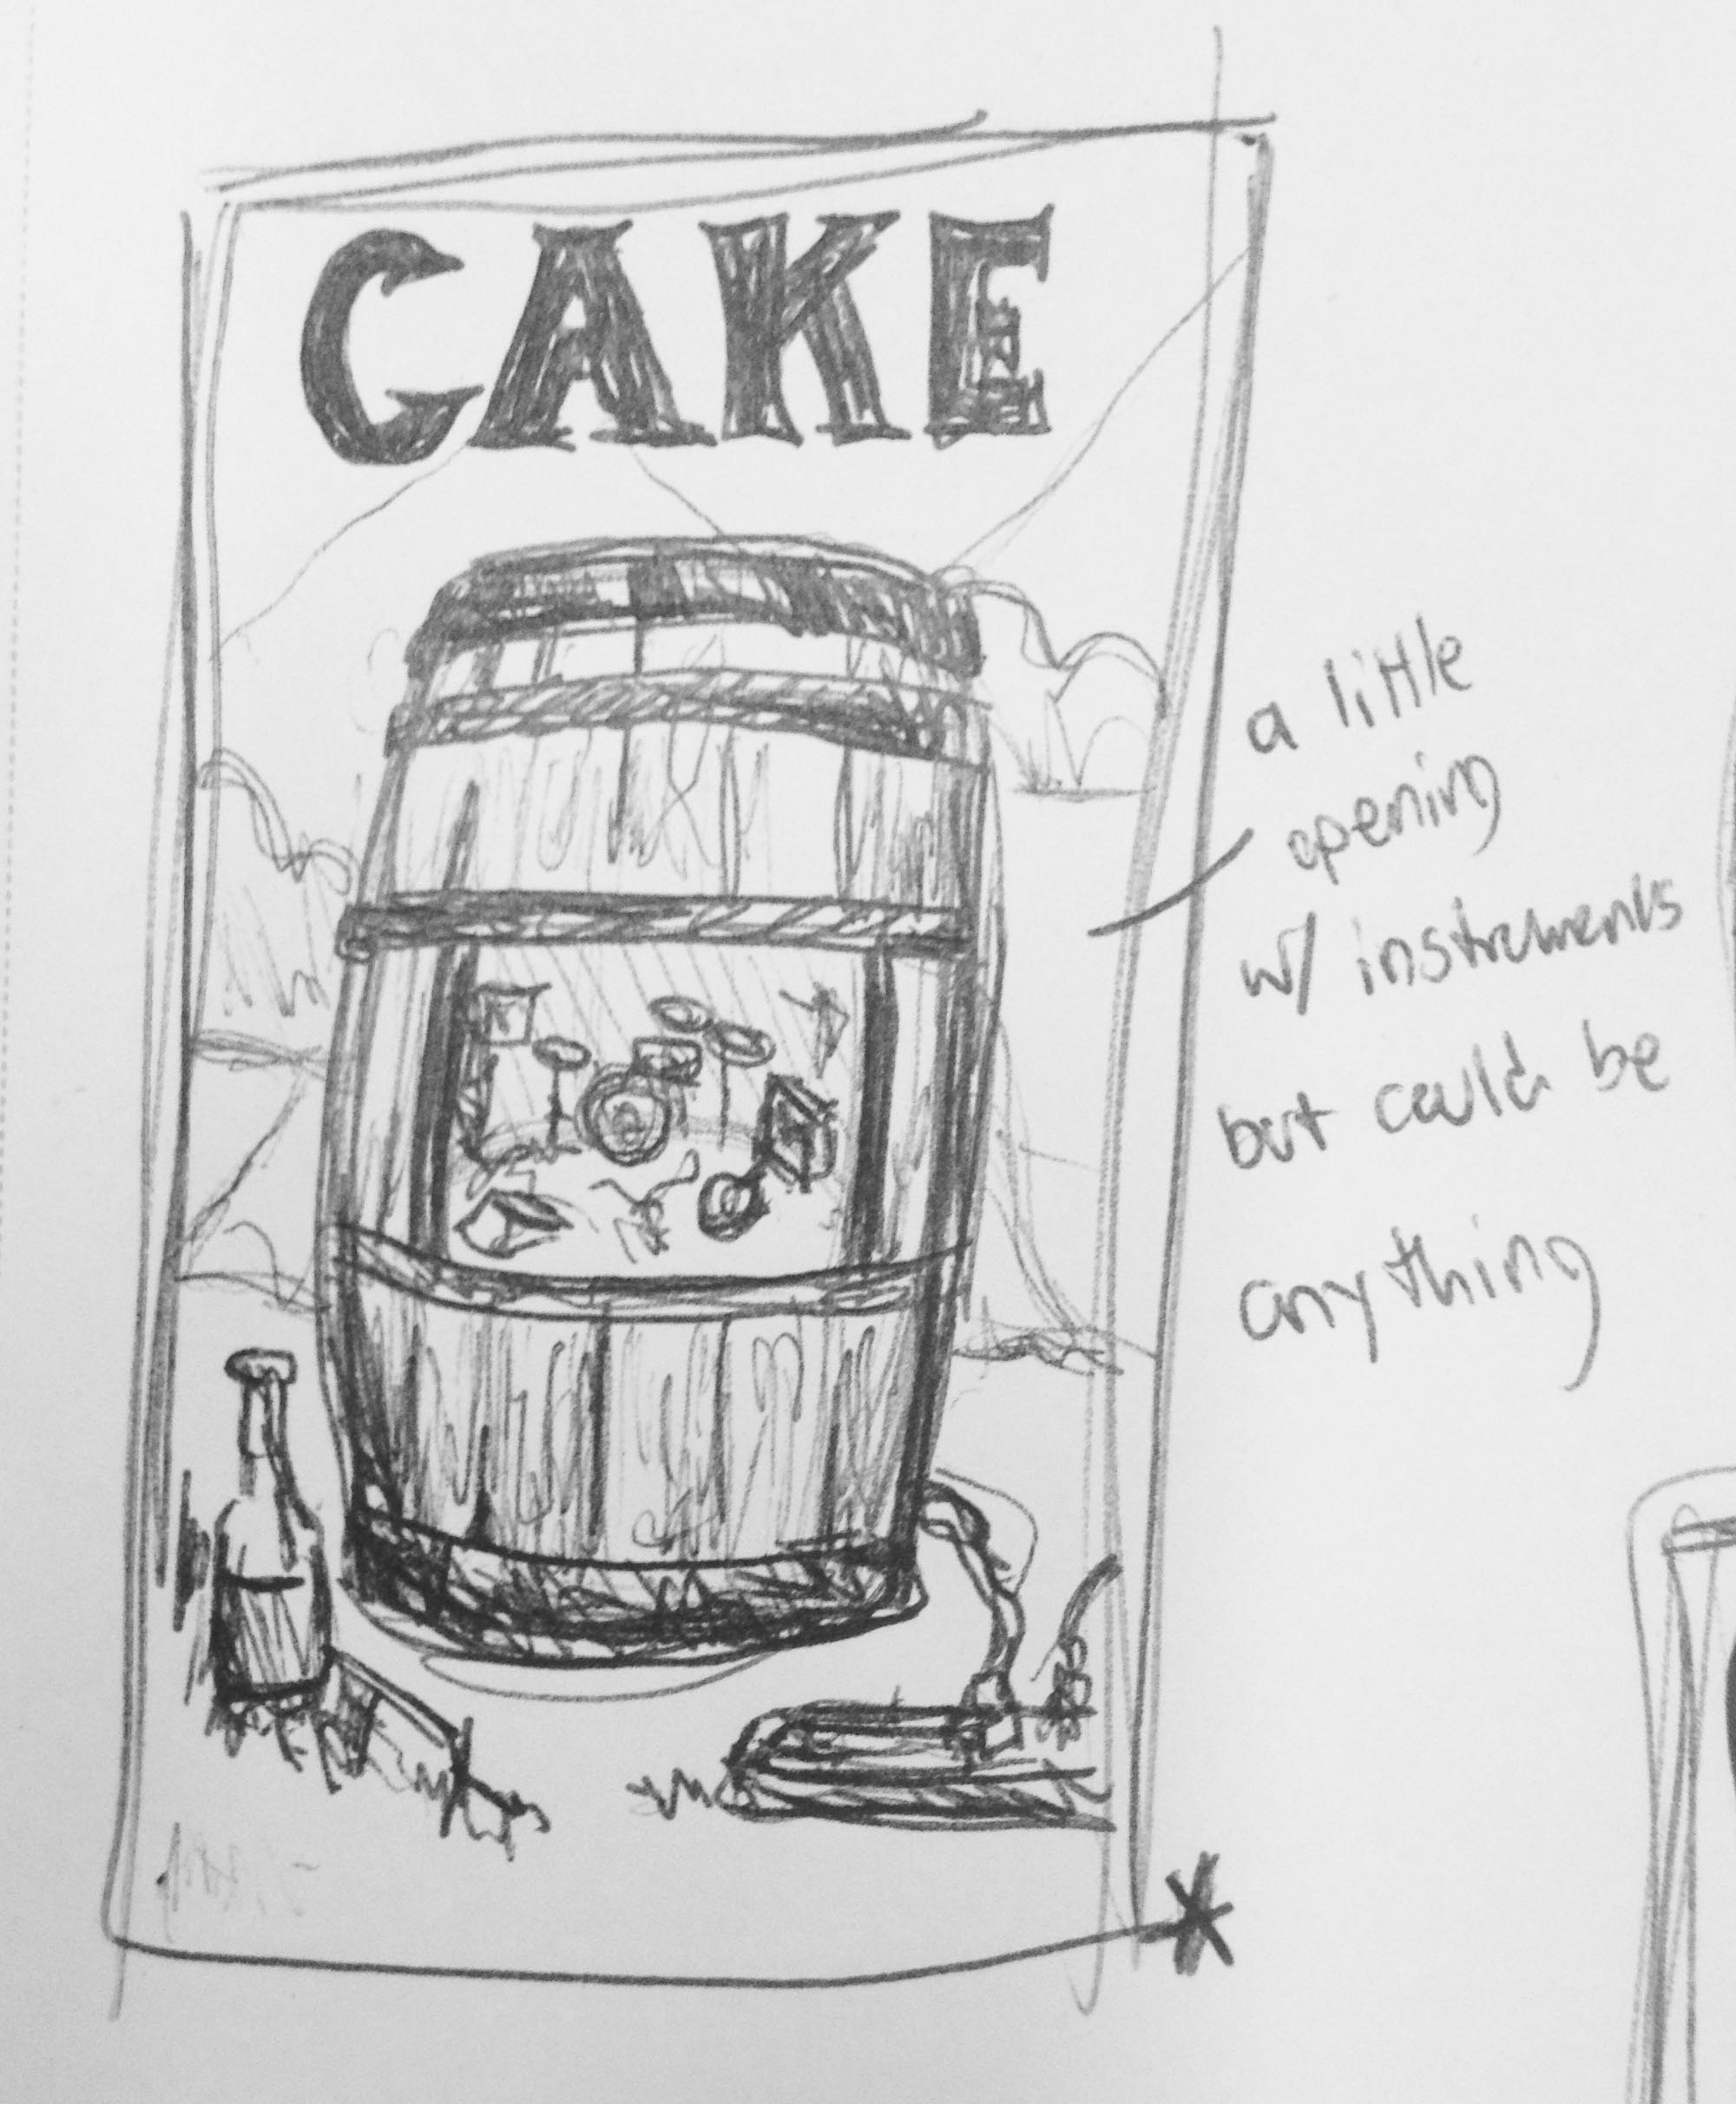 Cake at the Bottle Rock - Napa Valley May 12th - image 26 - student project